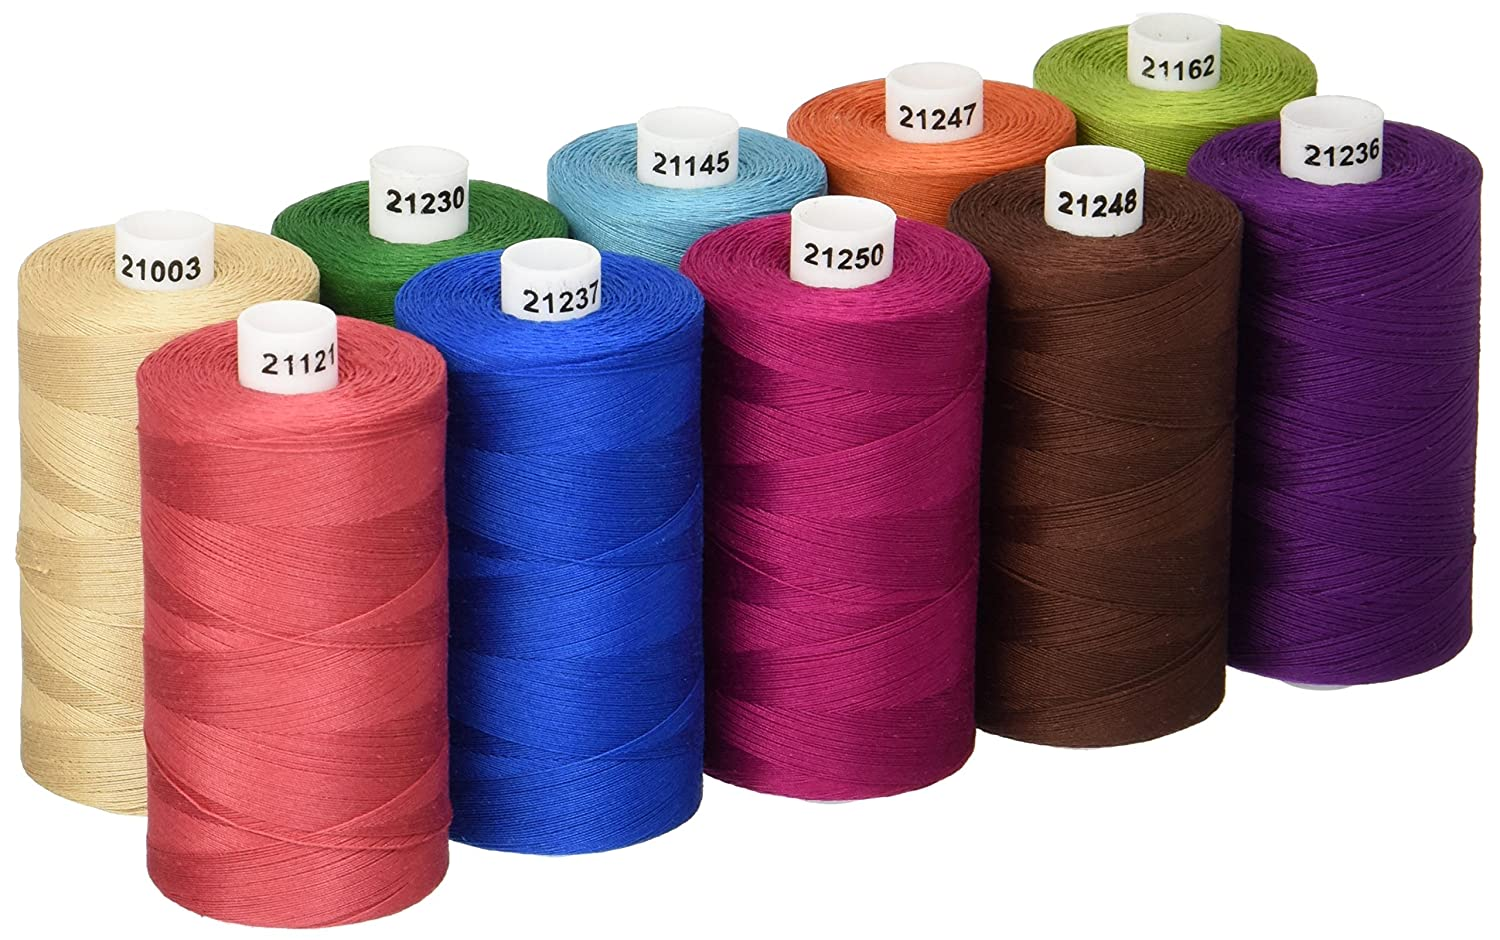 set of 10 Connecting Threads 100/% Cotton Thread Sets 1200 Yard Spools Cream